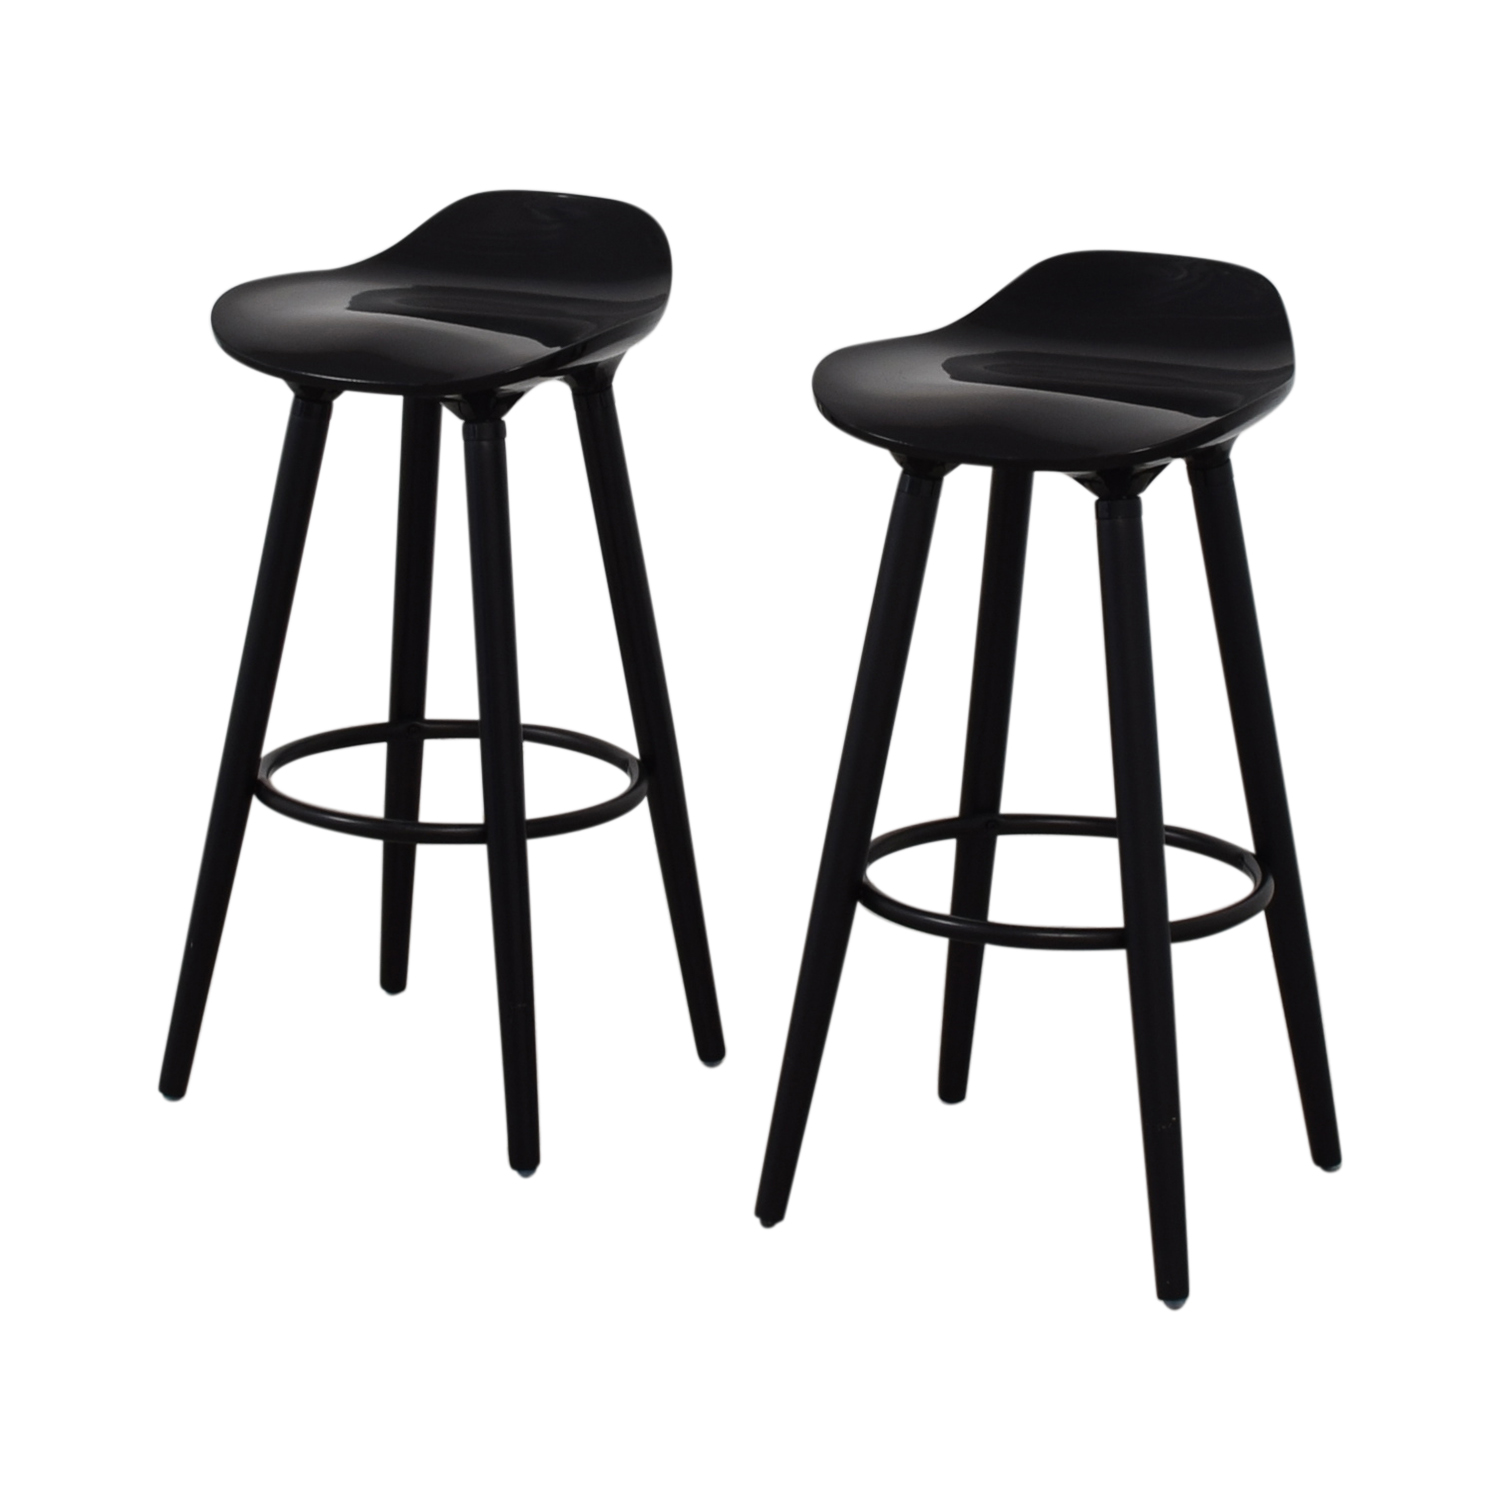 buy Sleek Black Modern Bar Stools  Chairs